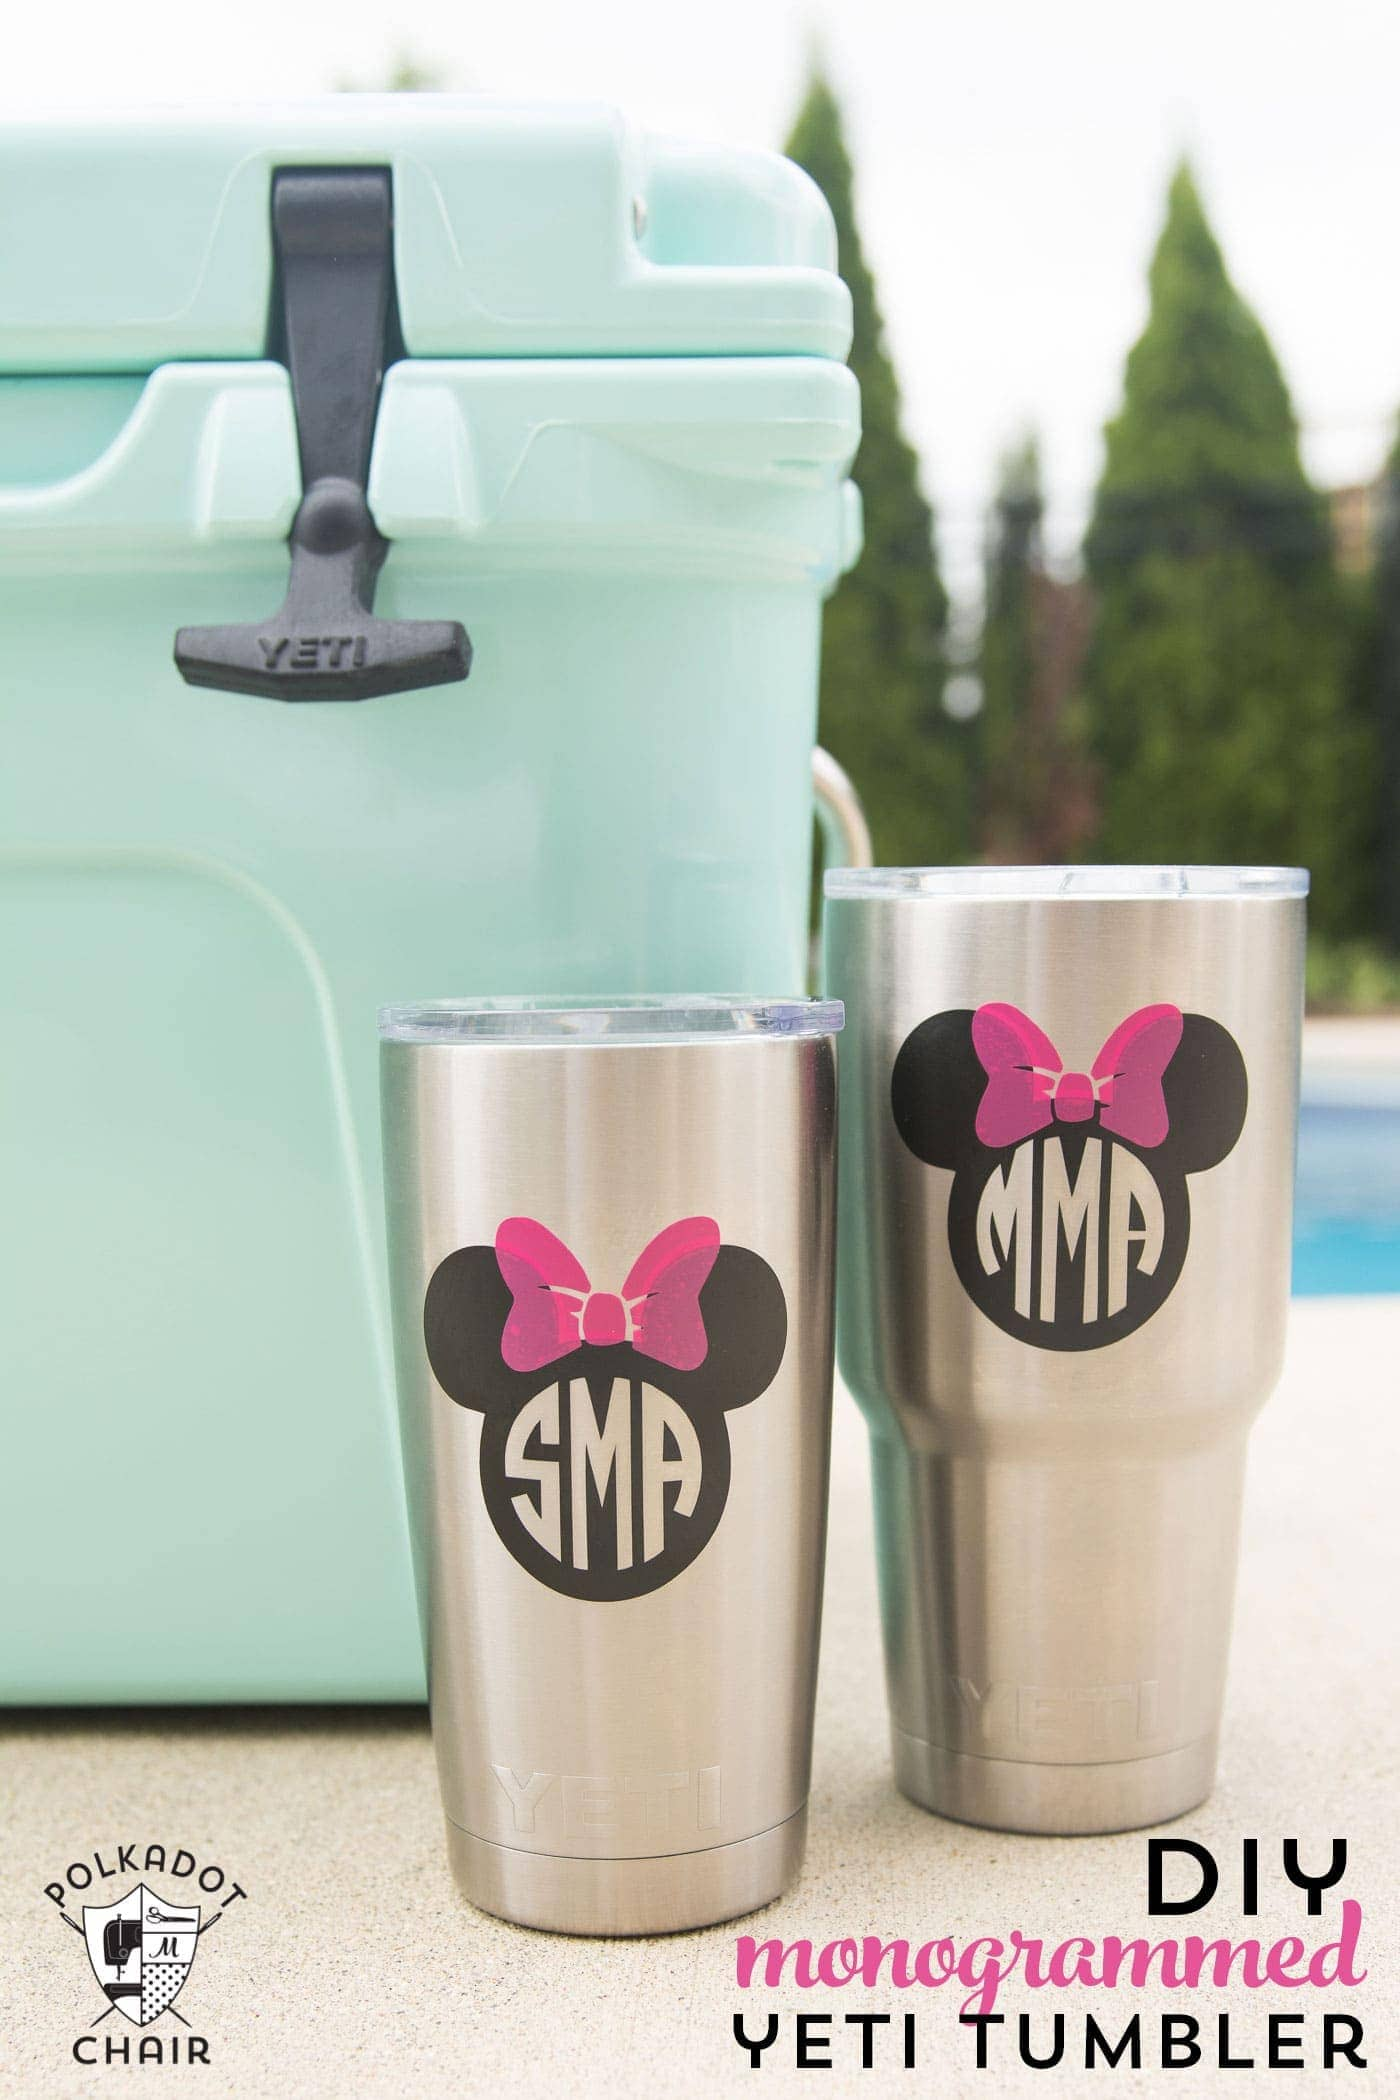 How To Diy Disney Monogram For A Yeti Tumbler The Polka